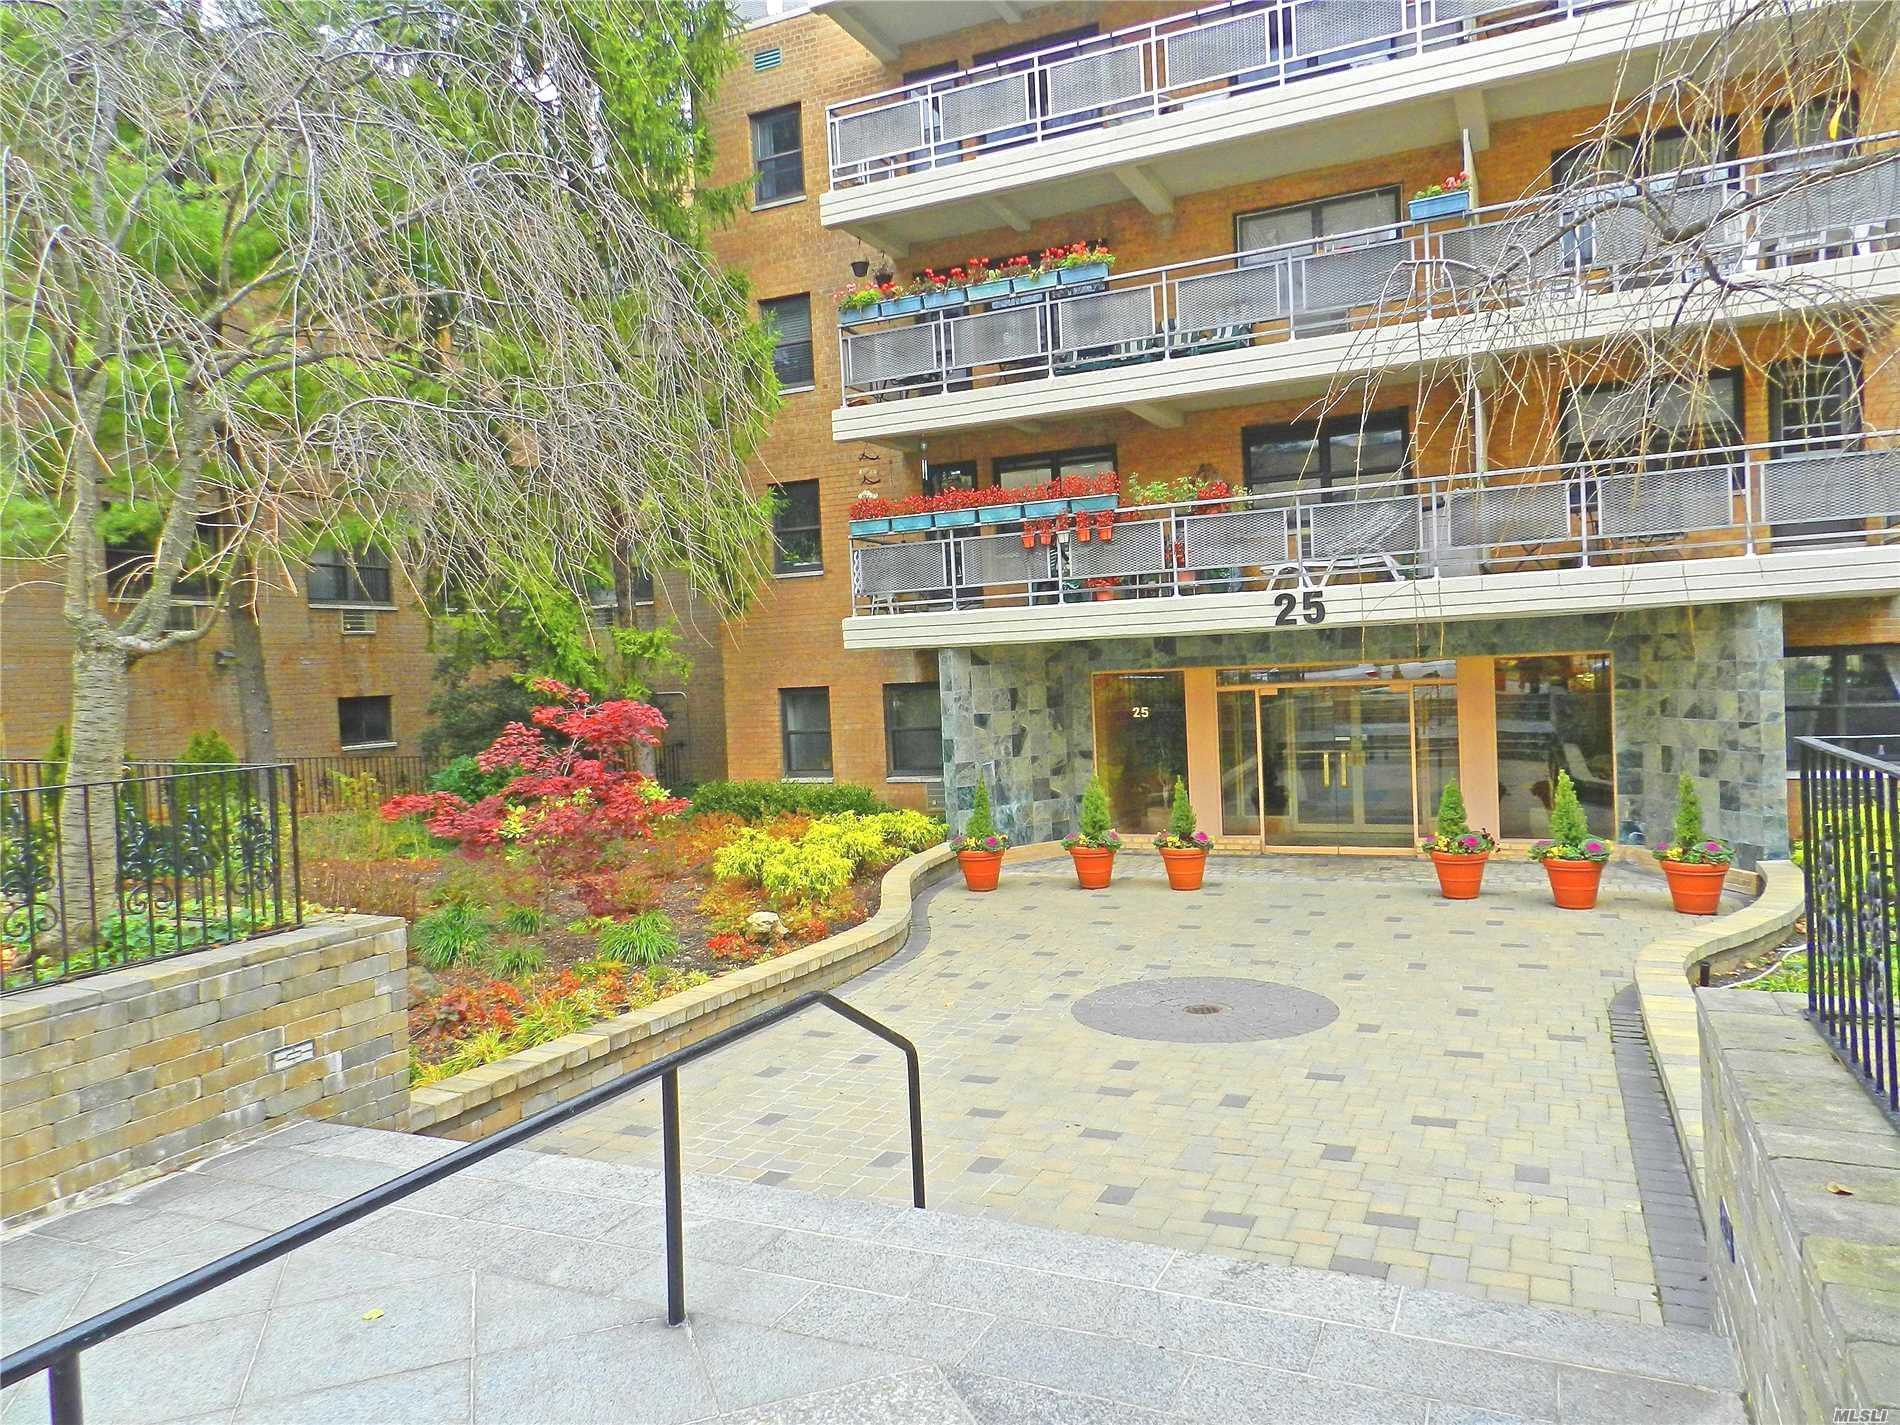 Welcome To This Fabulous Sunny South Exposure, Two Bedroom, Two Bath Co-Op Apartment In The Heart Of Great Neck, Large Living Room With An L Shaped Dining Area. A Large Terrace Overlooks Grace Ave Park. This Unit Comes With A Parking Space, Great Closet Space, Near Long Island Railroad, Town, Park, Stores And Parkwood Pool And Tennis, Icekating, South School.Low Maintenance!.